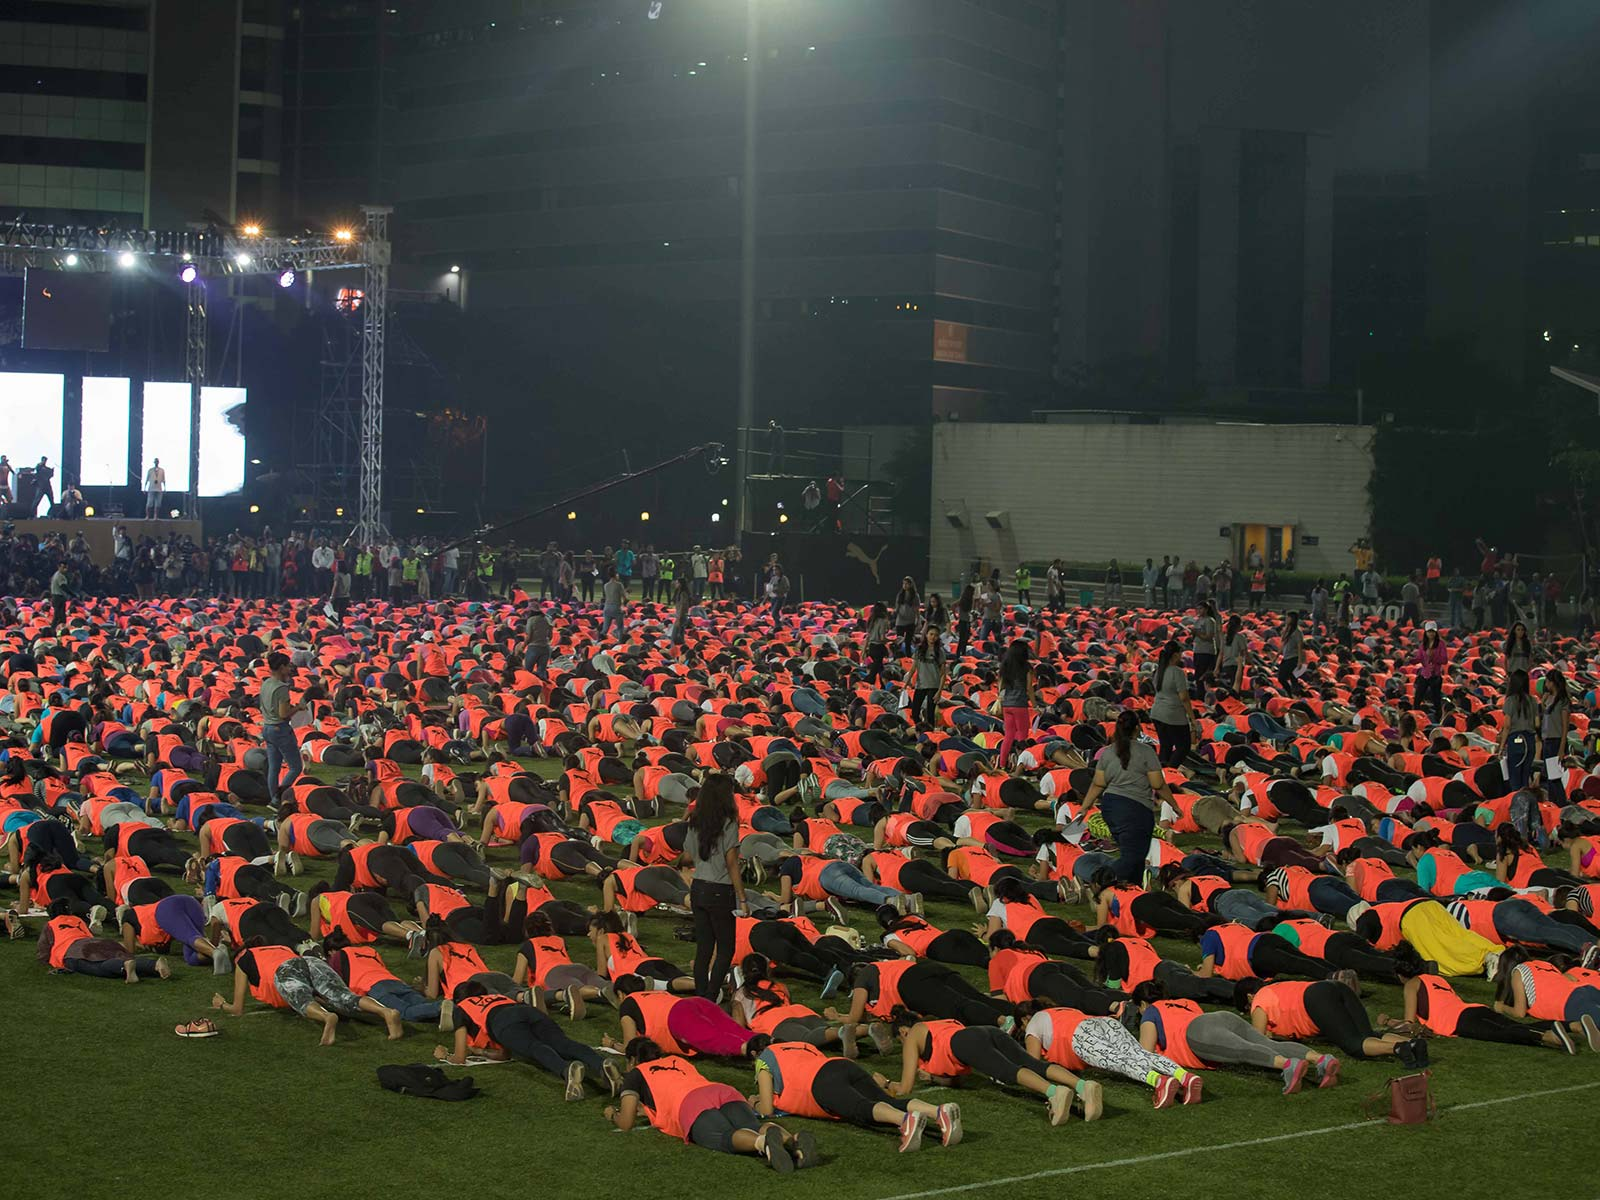 1623 women including the POPxo Team and Plixxo Bloggers successfully setting a new Guinness World Record for holding the abdominal plank simultaneously